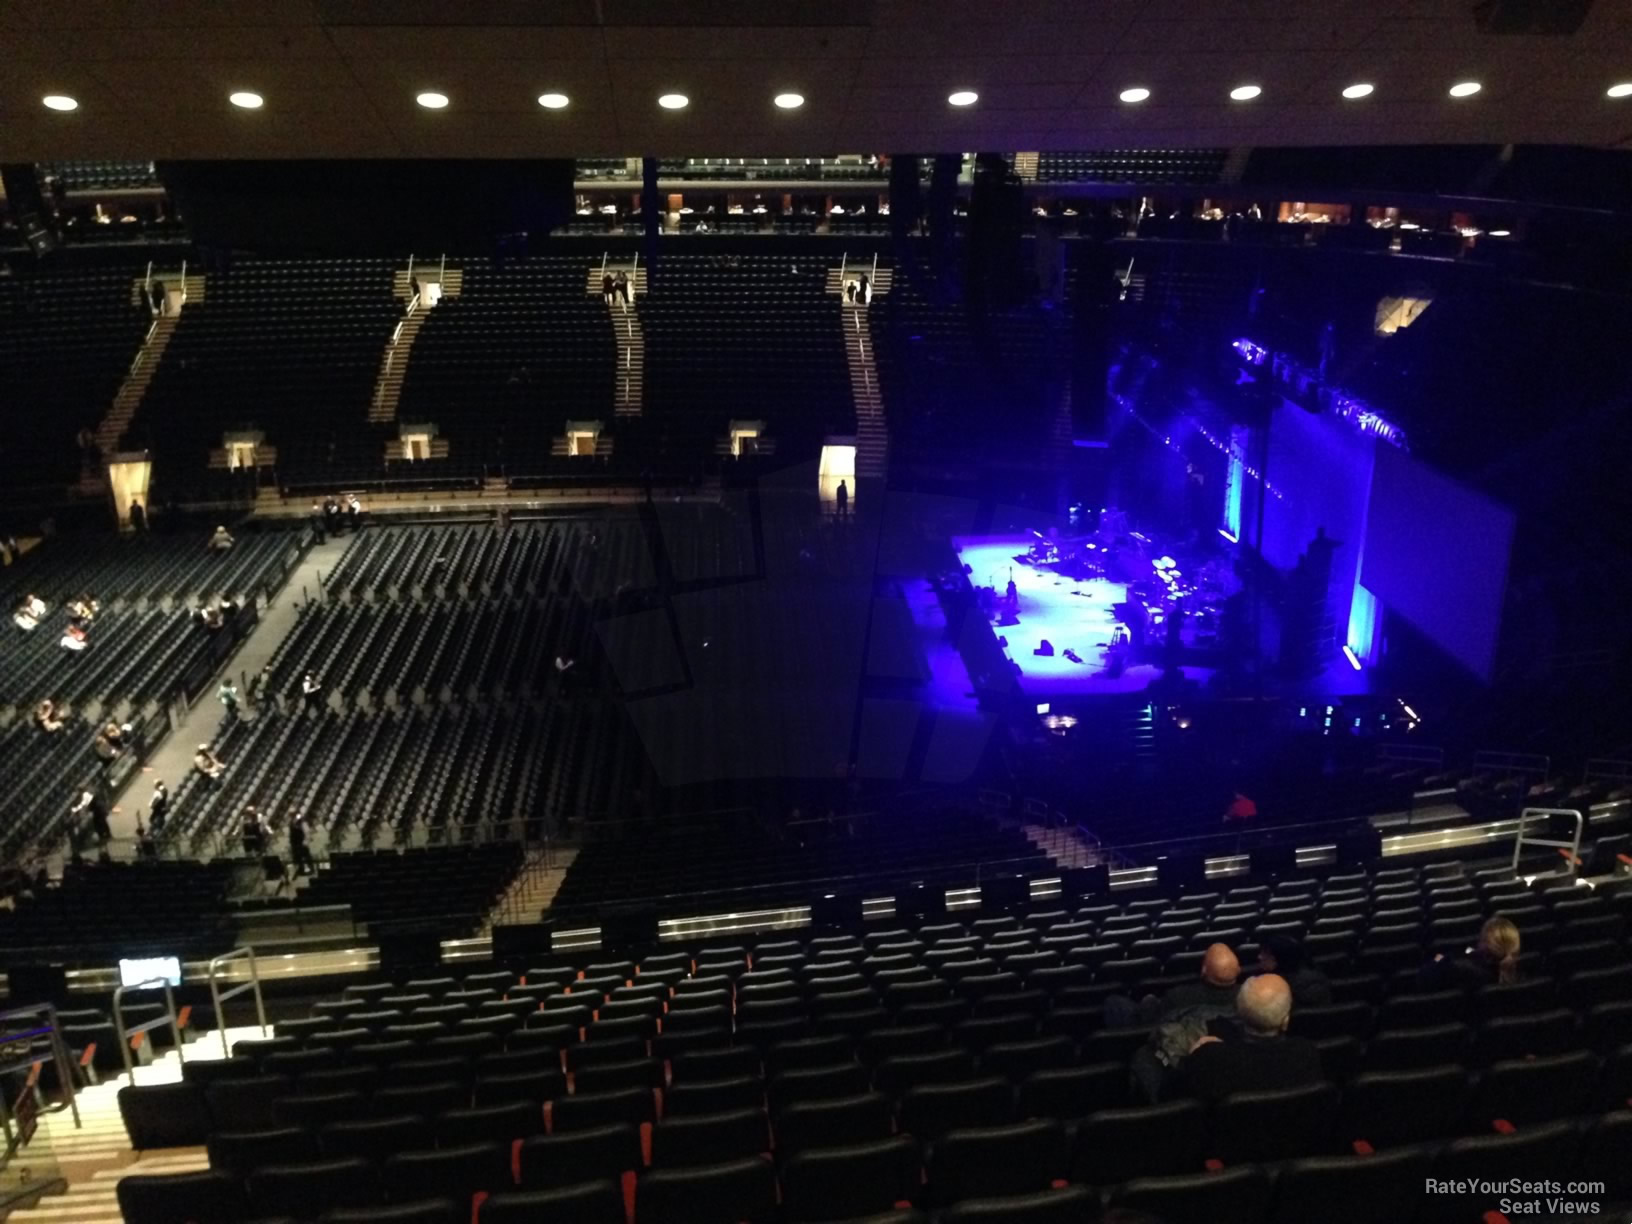 Section 212 at Madison Square Garden for Concerts - RateYourSeats.com